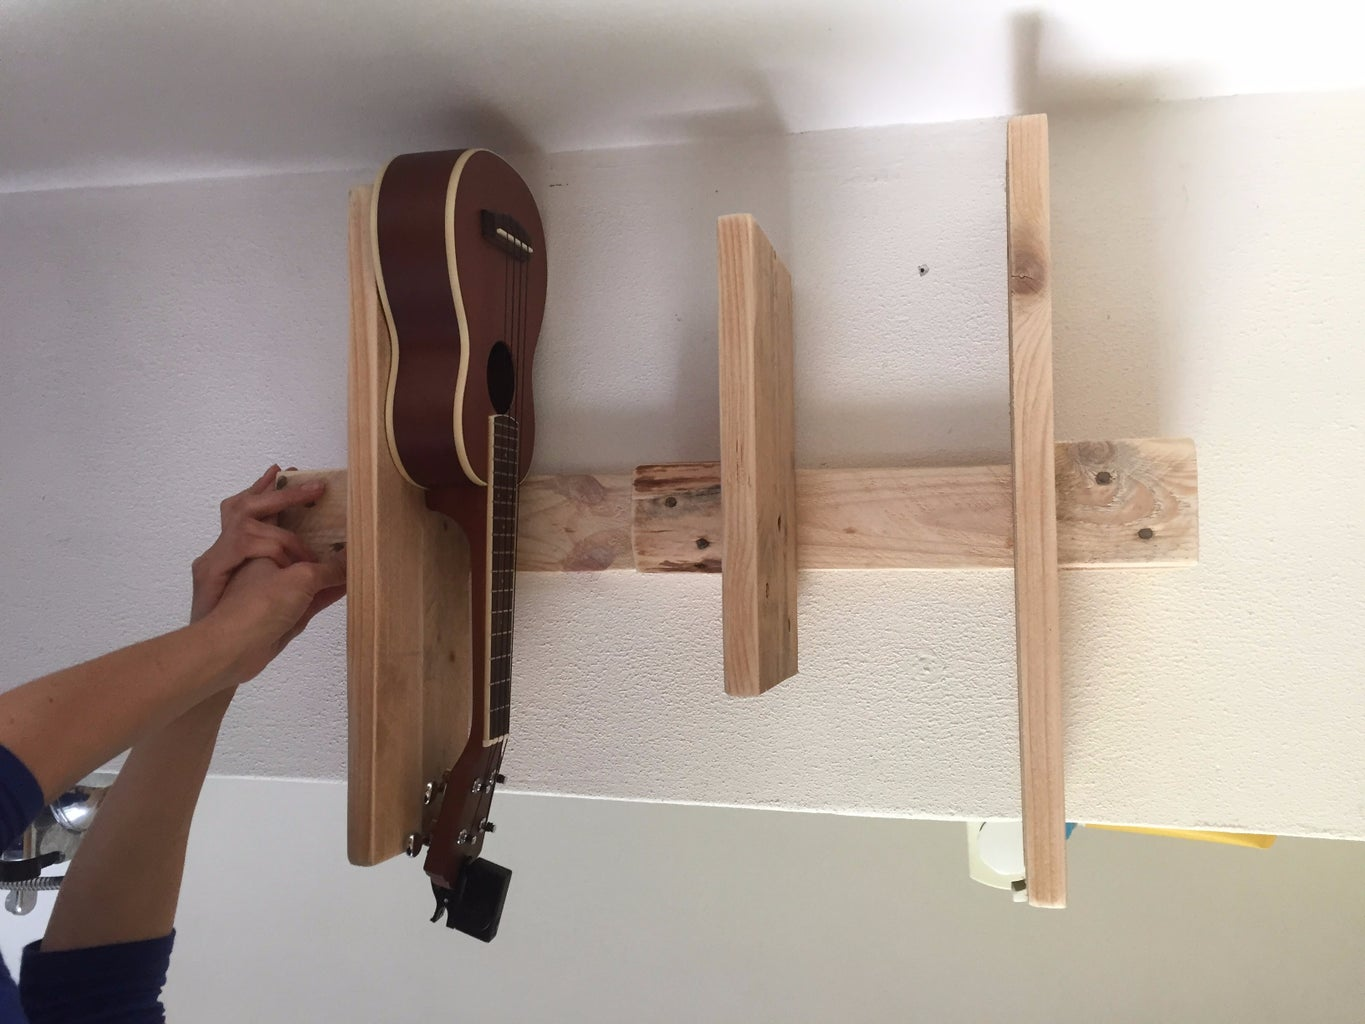 Screw in the Shelves, Test Fit It on Your Bathroom Wall With a Ukelele